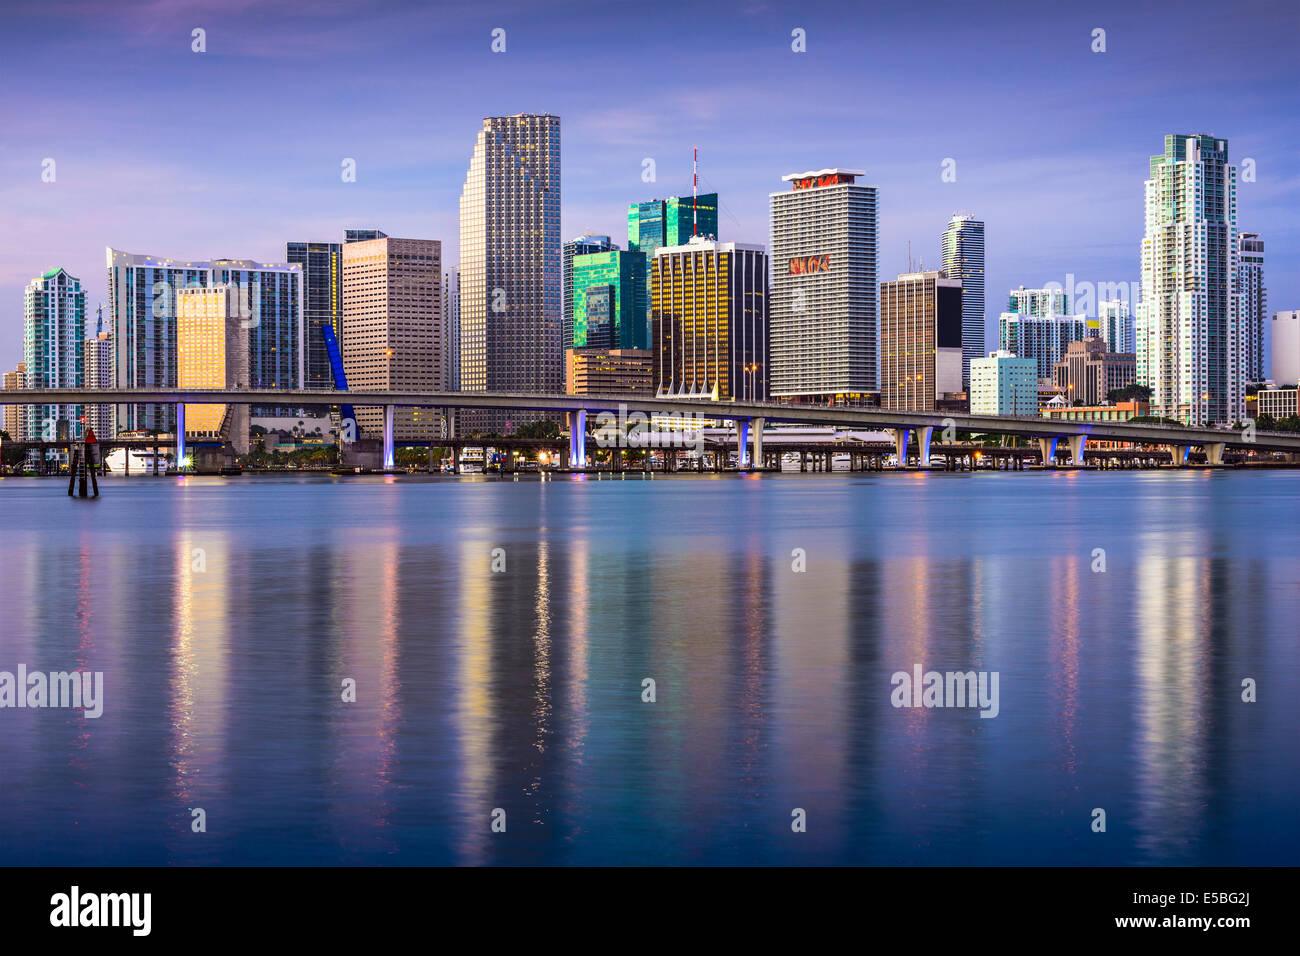 Miami, Floride, USA sur le centre-ville. Photo Stock